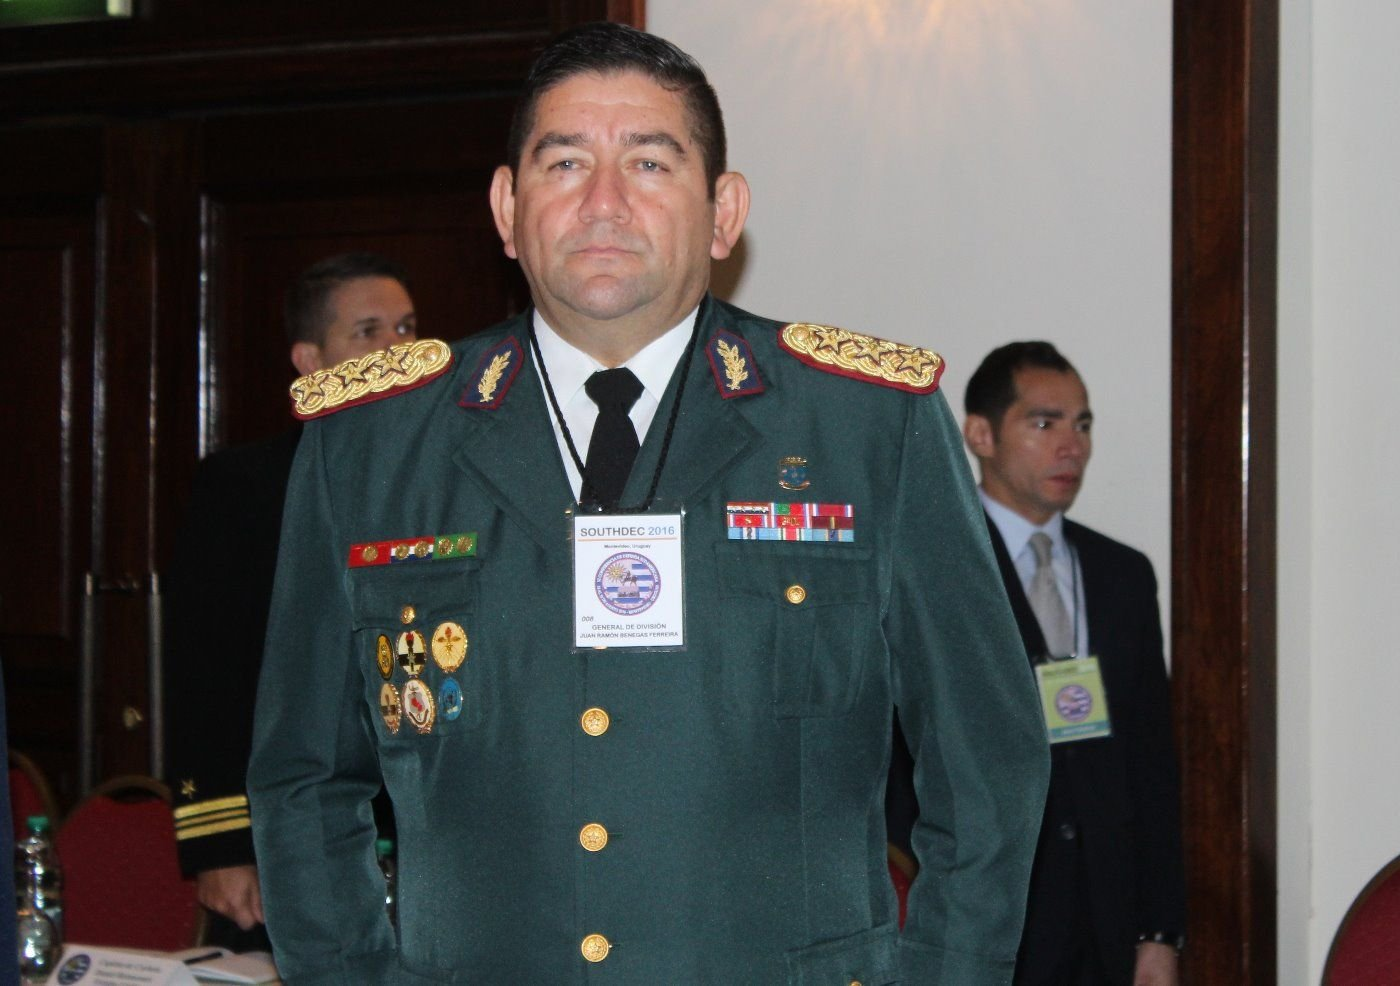 Paraguay's Participation in Peacekeeping Operations is an Example to Other Countries